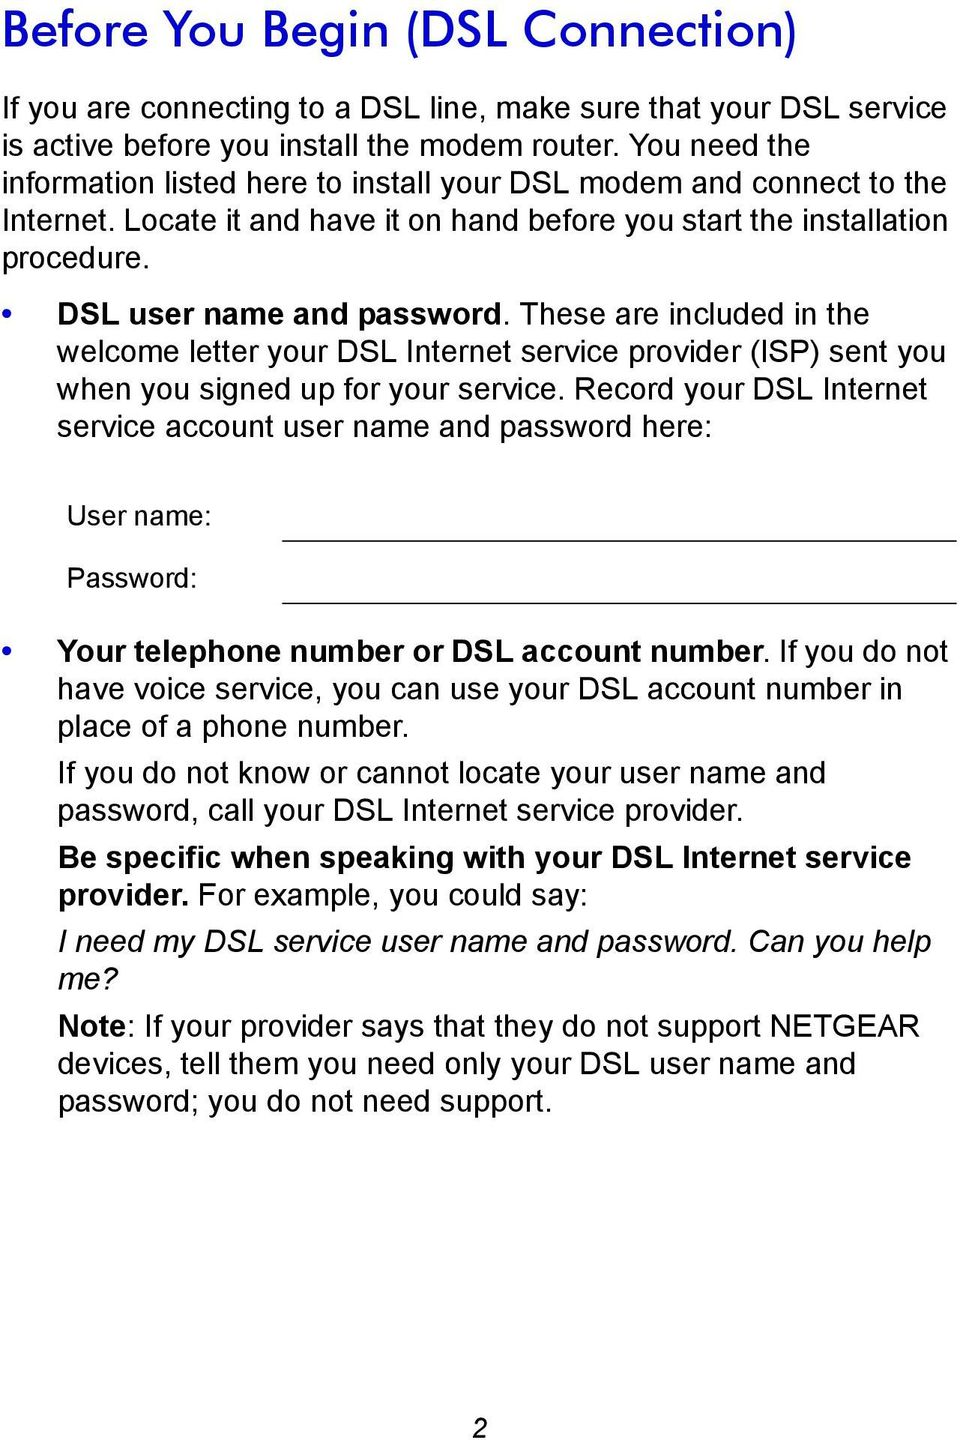 These are included in the welcome letter your DSL Internet service provider (ISP) sent you when you signed up for your service.